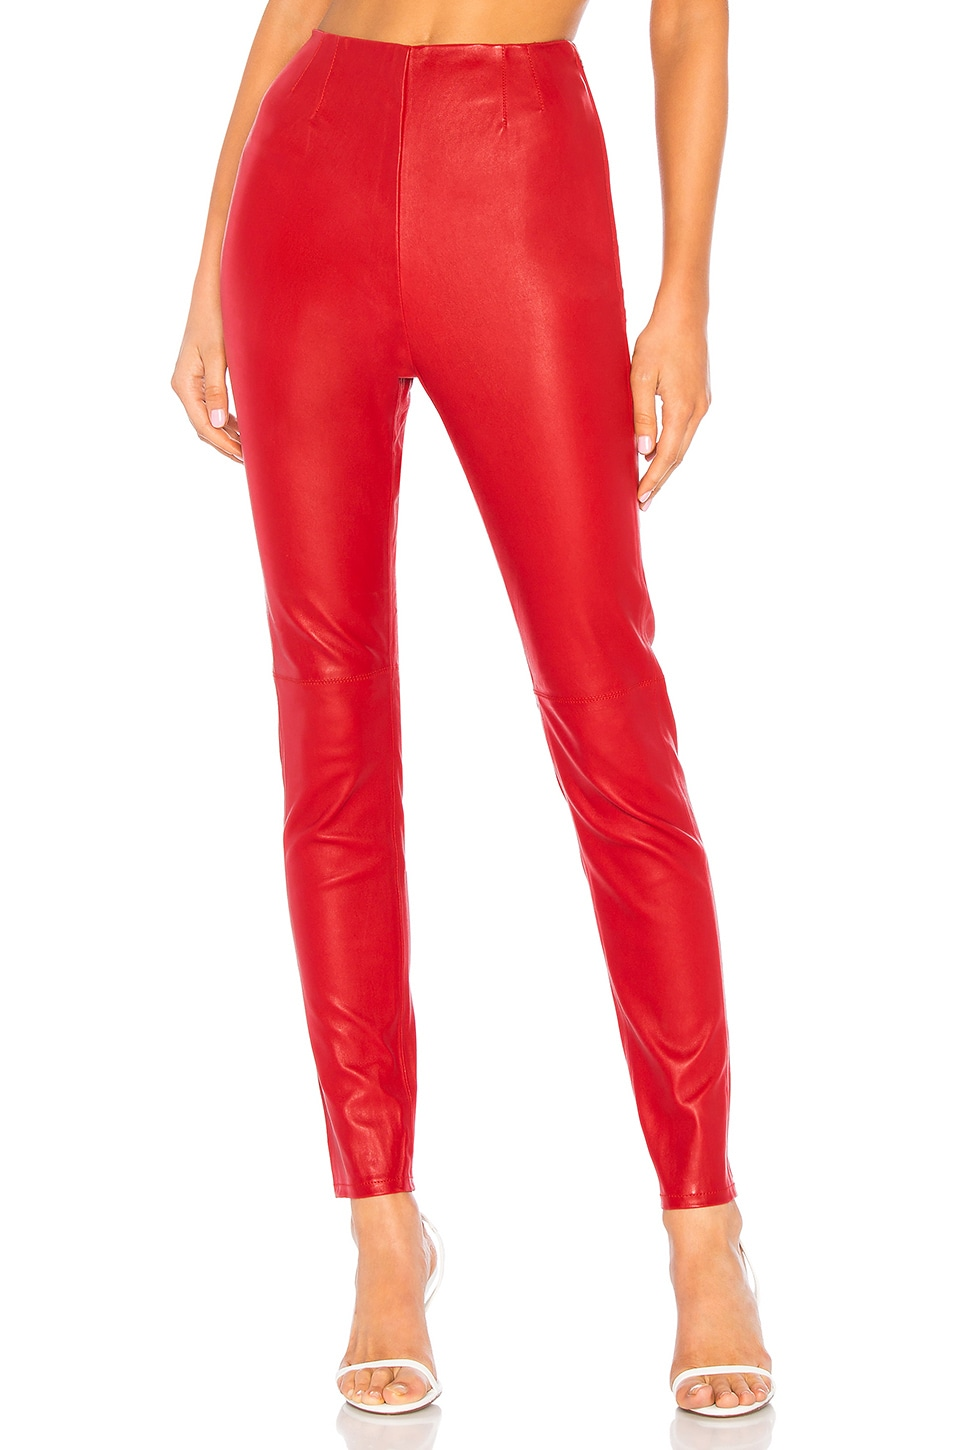 L'Academie Angelica Leather Pants in True Red